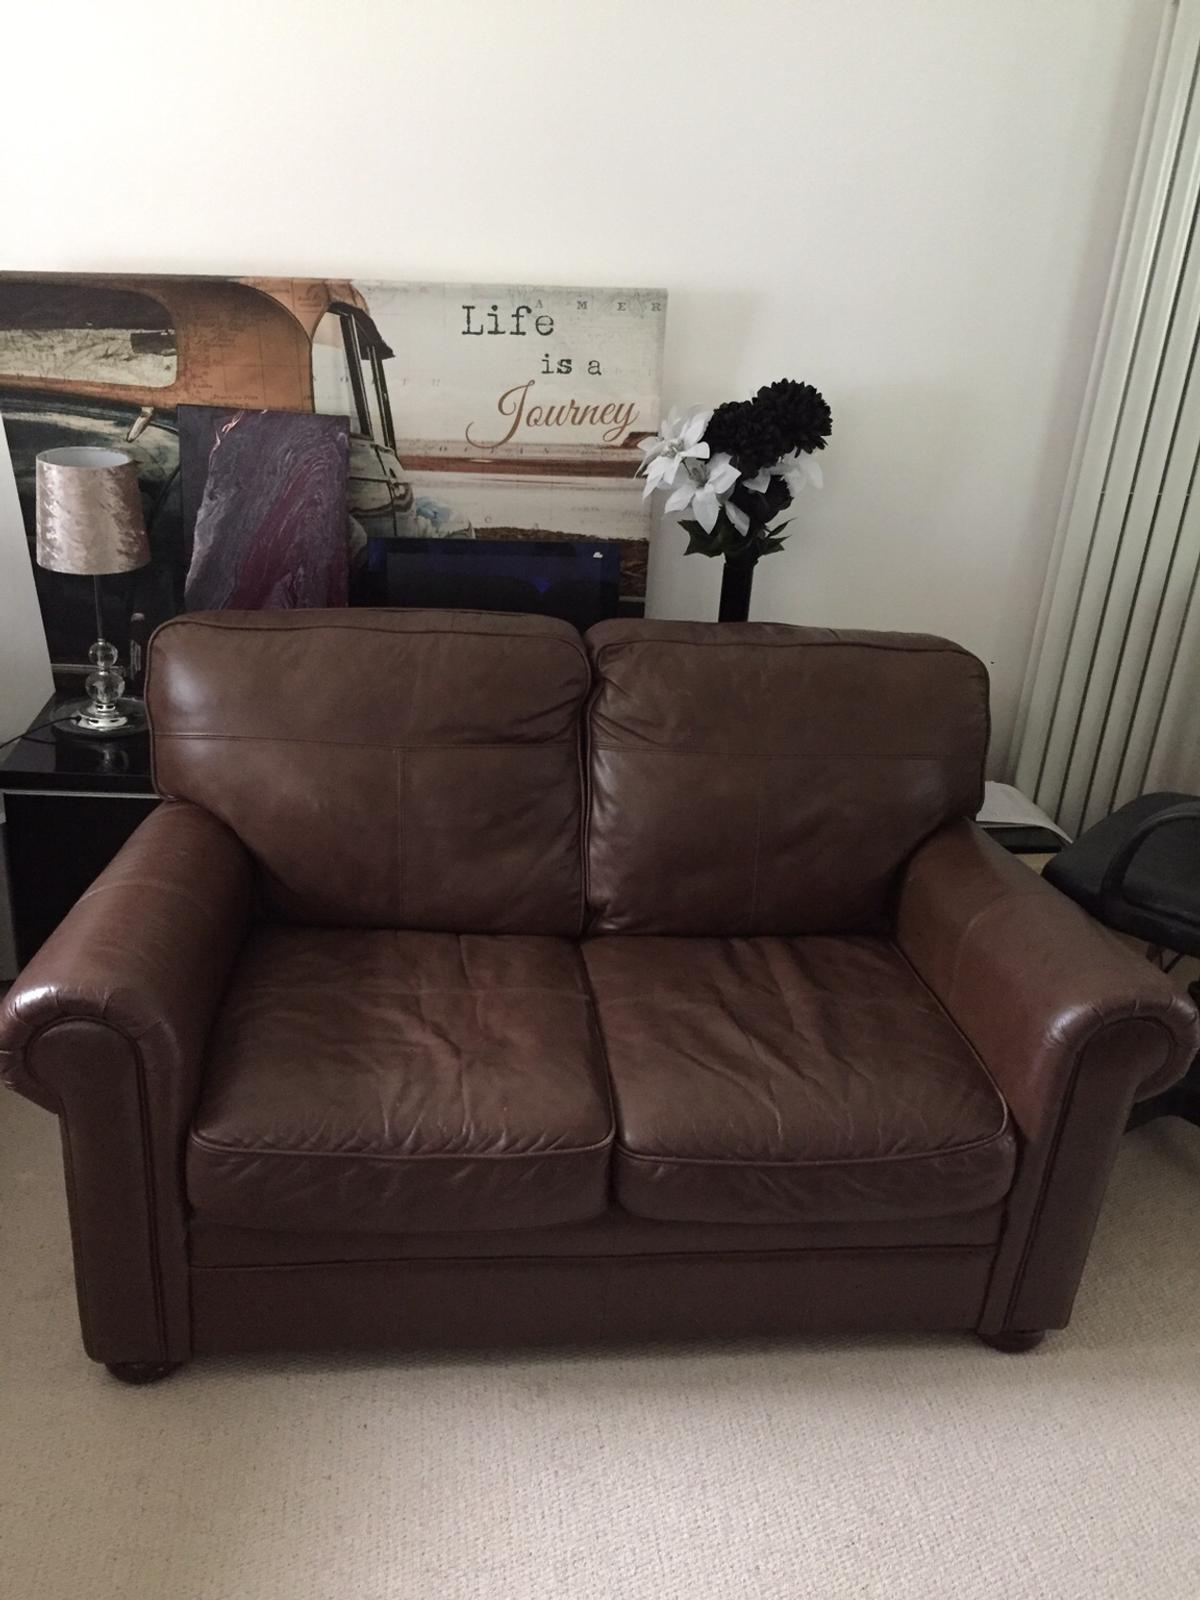 3 Seater Leather Sofa Bed Matching 2 Seater In Rh10 Sussex For 250 00 For Sale Shpock